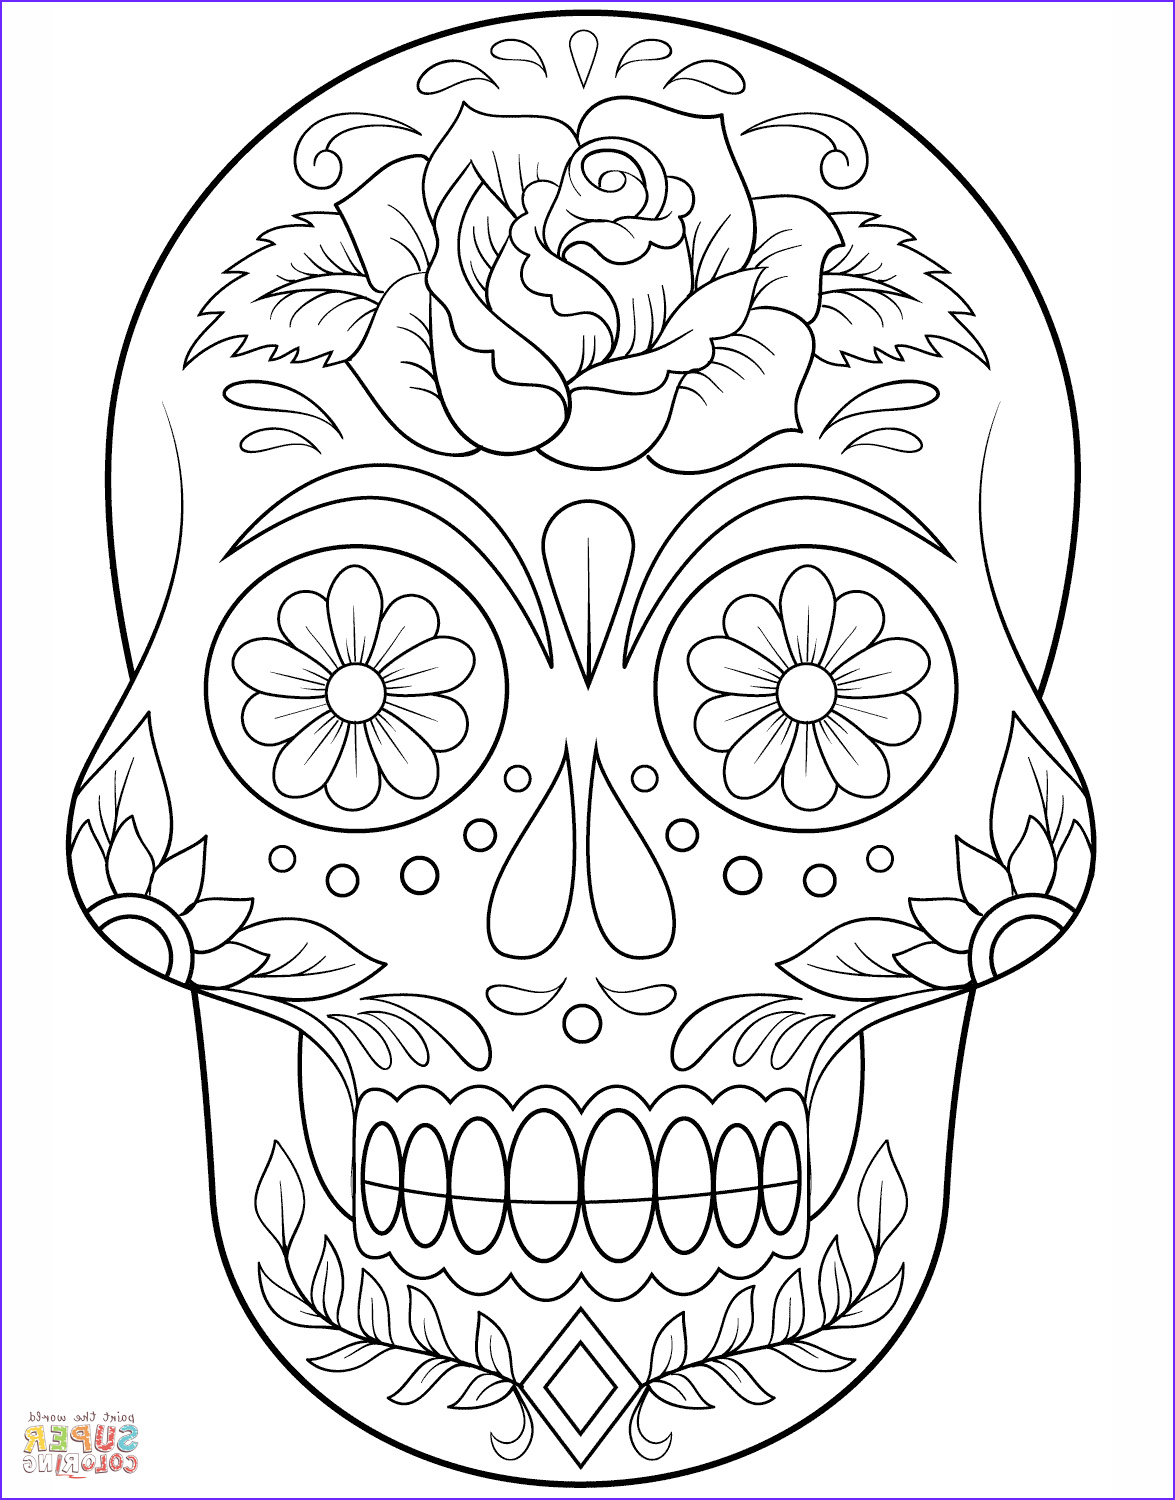 Sugar Skull Coloring Pages Unique Photos Sugar Skull with Flowers Super Coloring